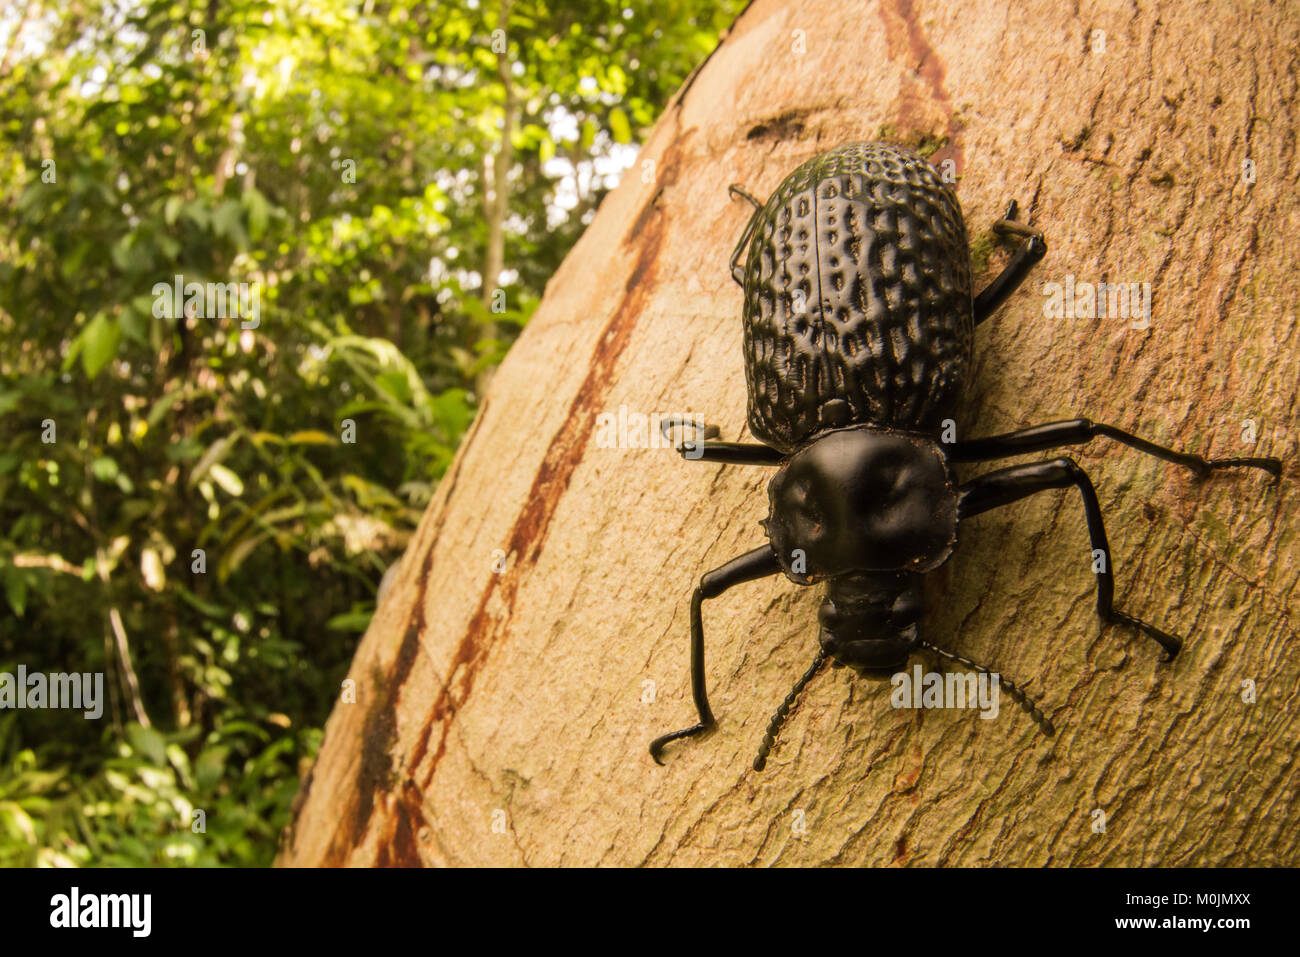 A huge tropical darkling beetle (Taphrosoma dohrni) found moving about on a fallen tree in the Colombian Amazon. - Stock Image